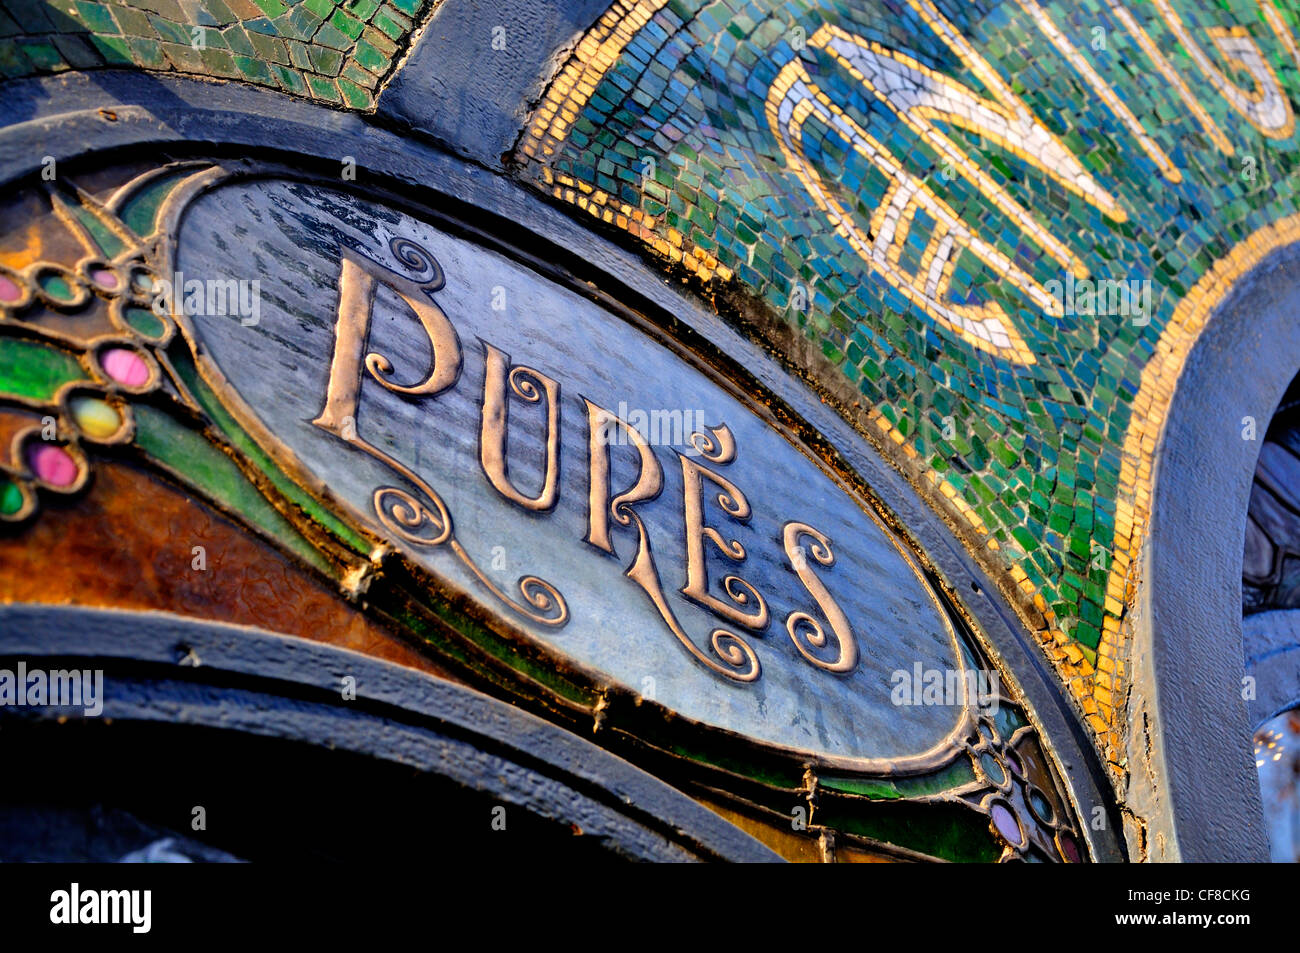 Barcelona, Spain. La Rambla. Antigua Casa Figueras / Escriba patisserie at No 83 - facade decoration (1902) - Stock Image